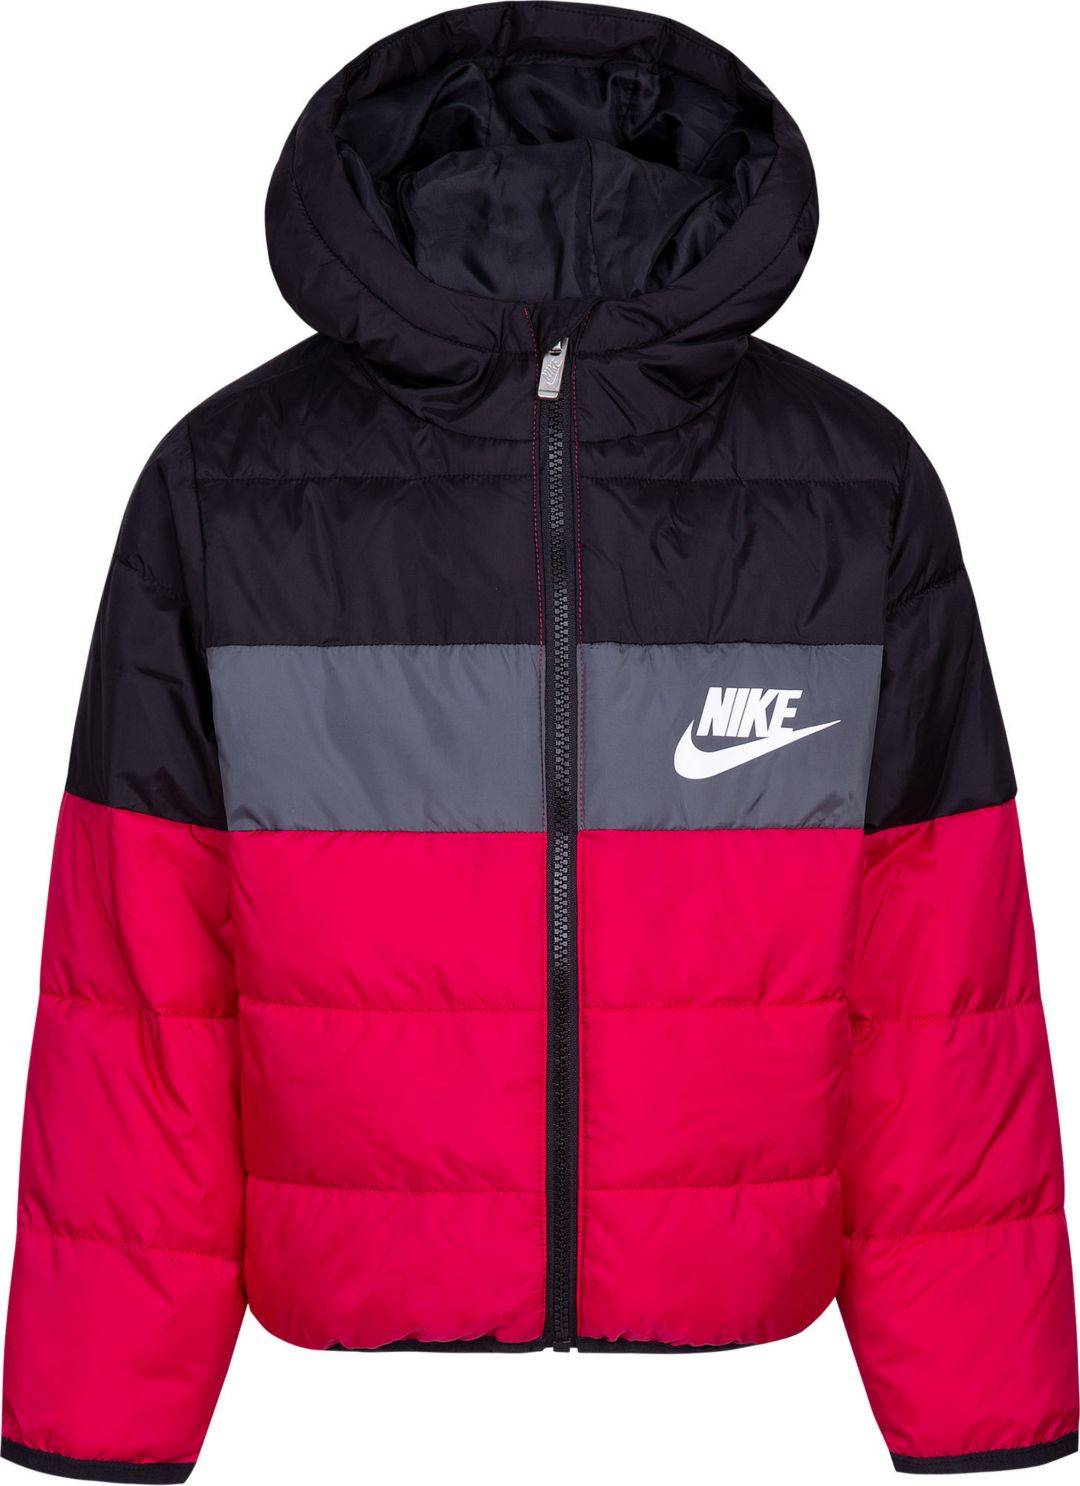 28b17bc9b77d2 Nike Girls' Polyfill Blocked Insulated Puffer Jacket